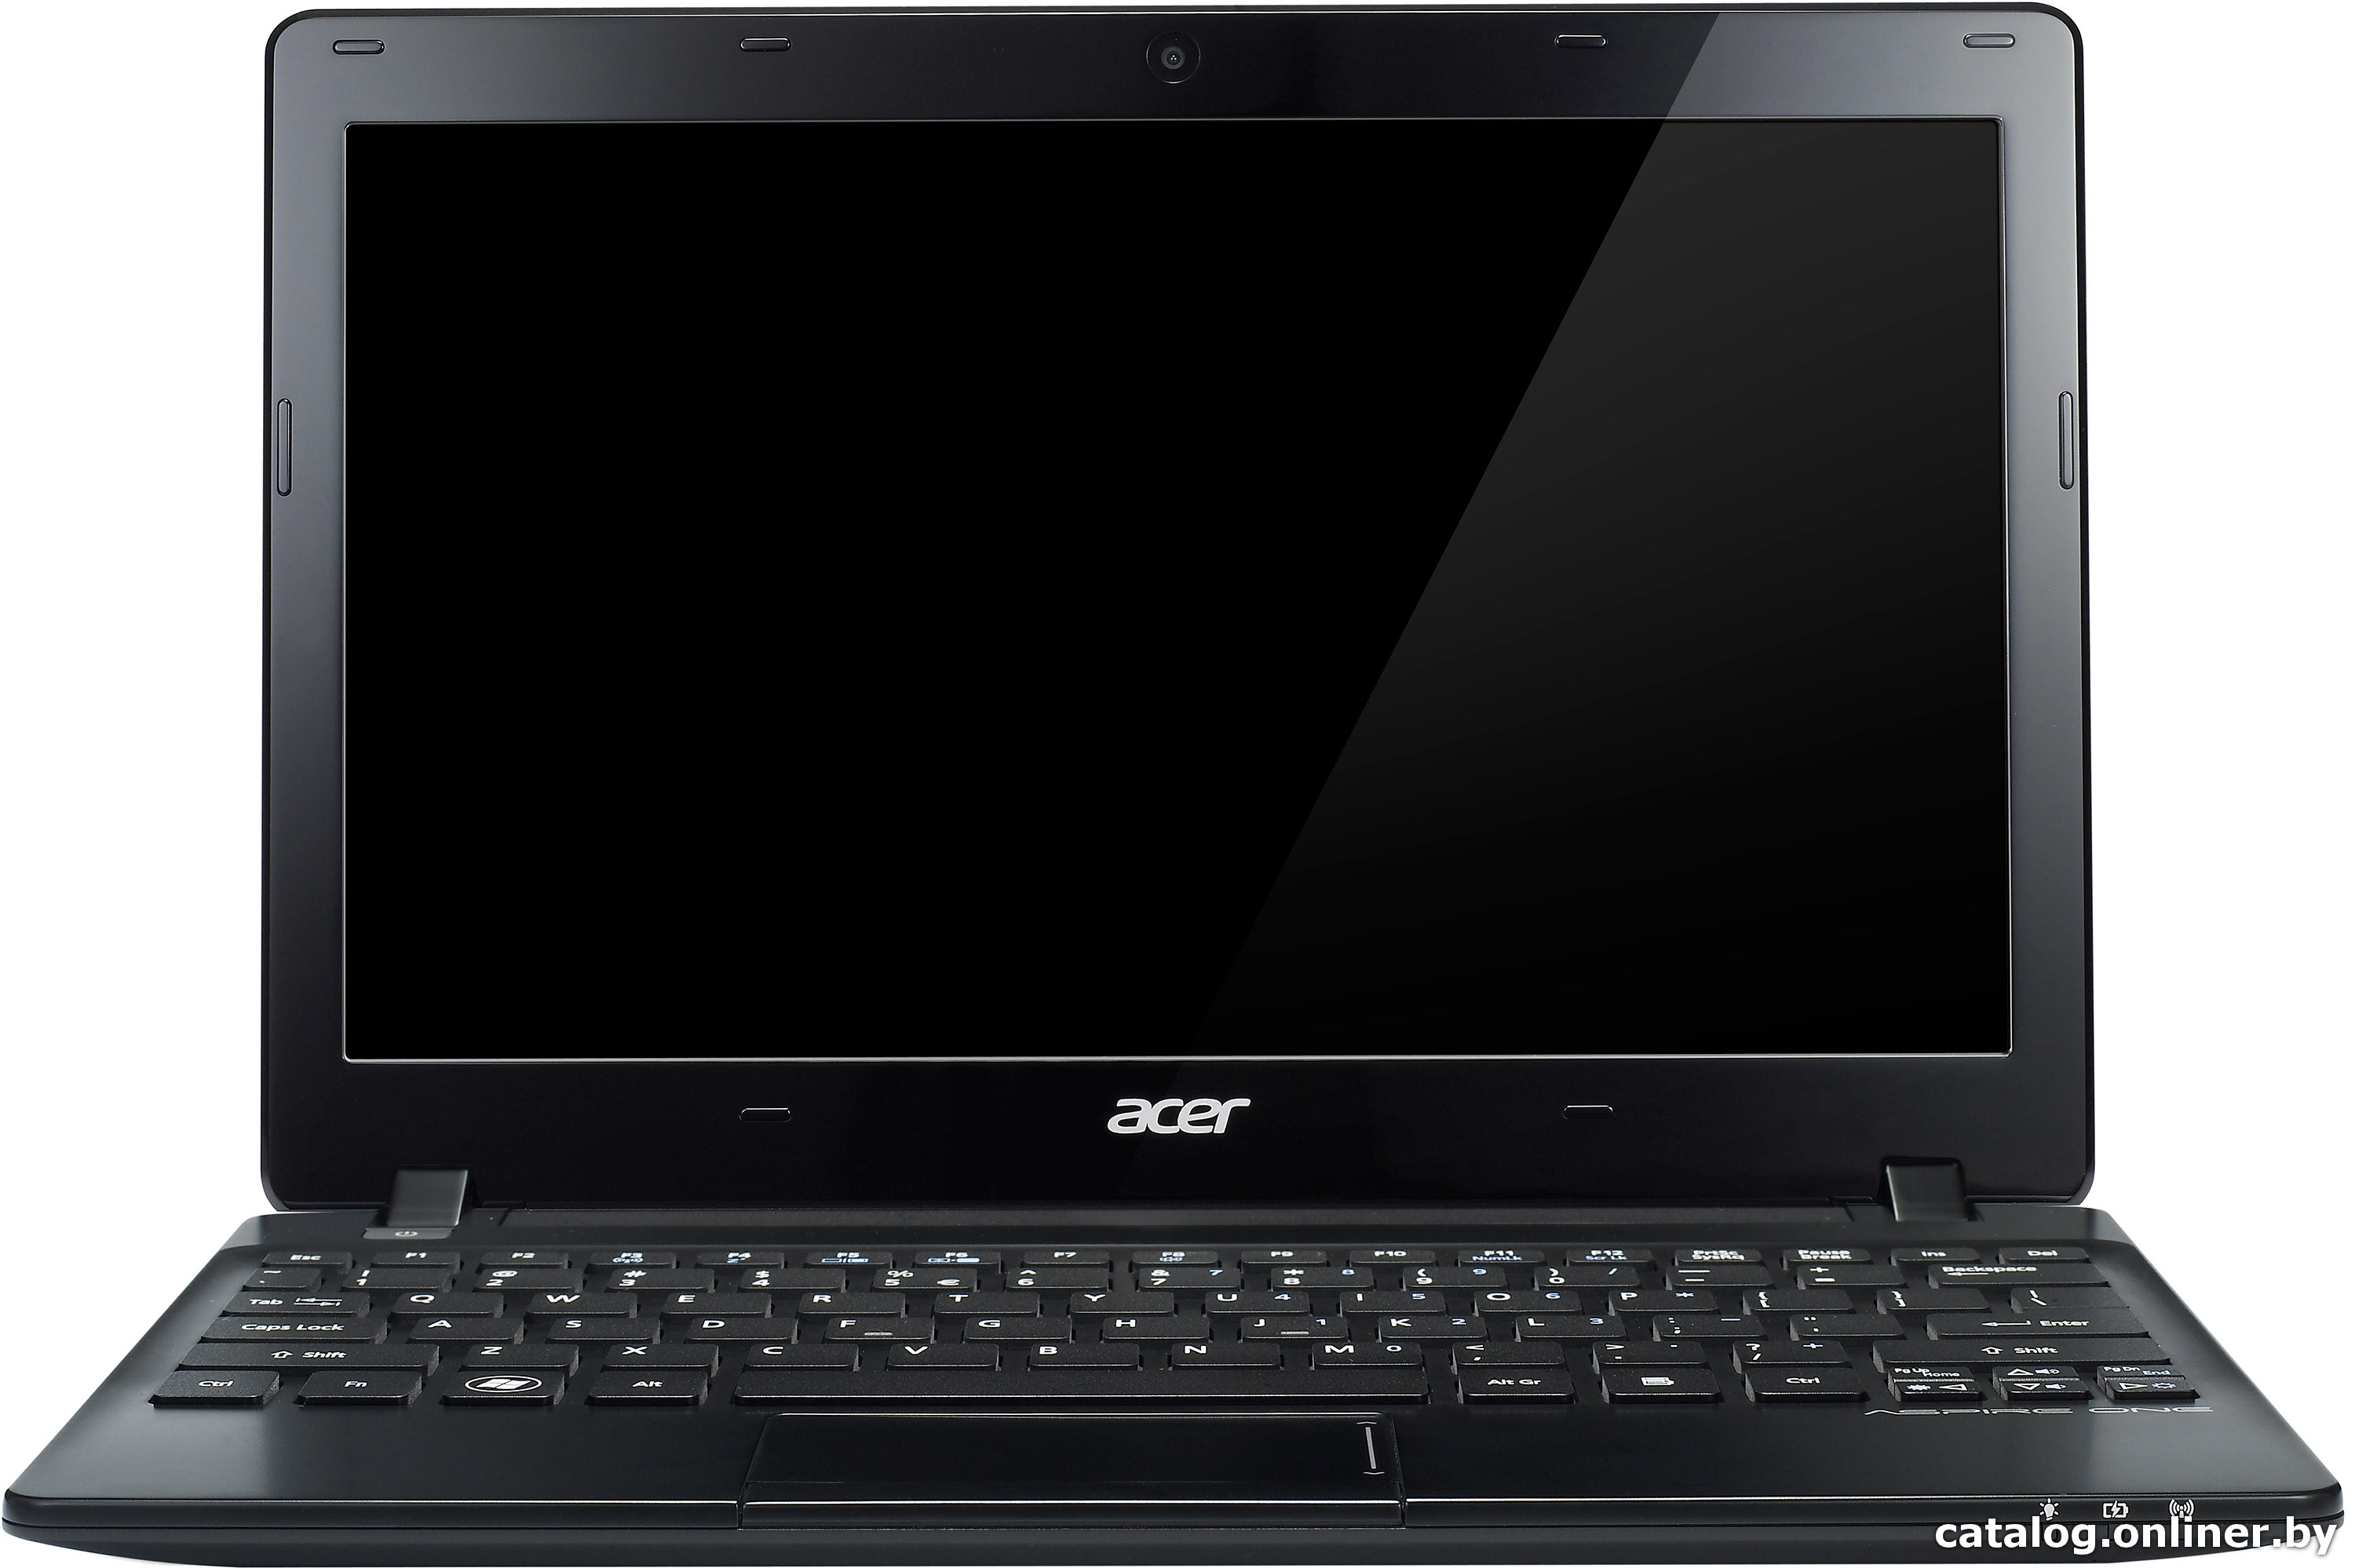 ACER ASPIRE ONE 725 WIRELESS LAN DRIVER DOWNLOAD